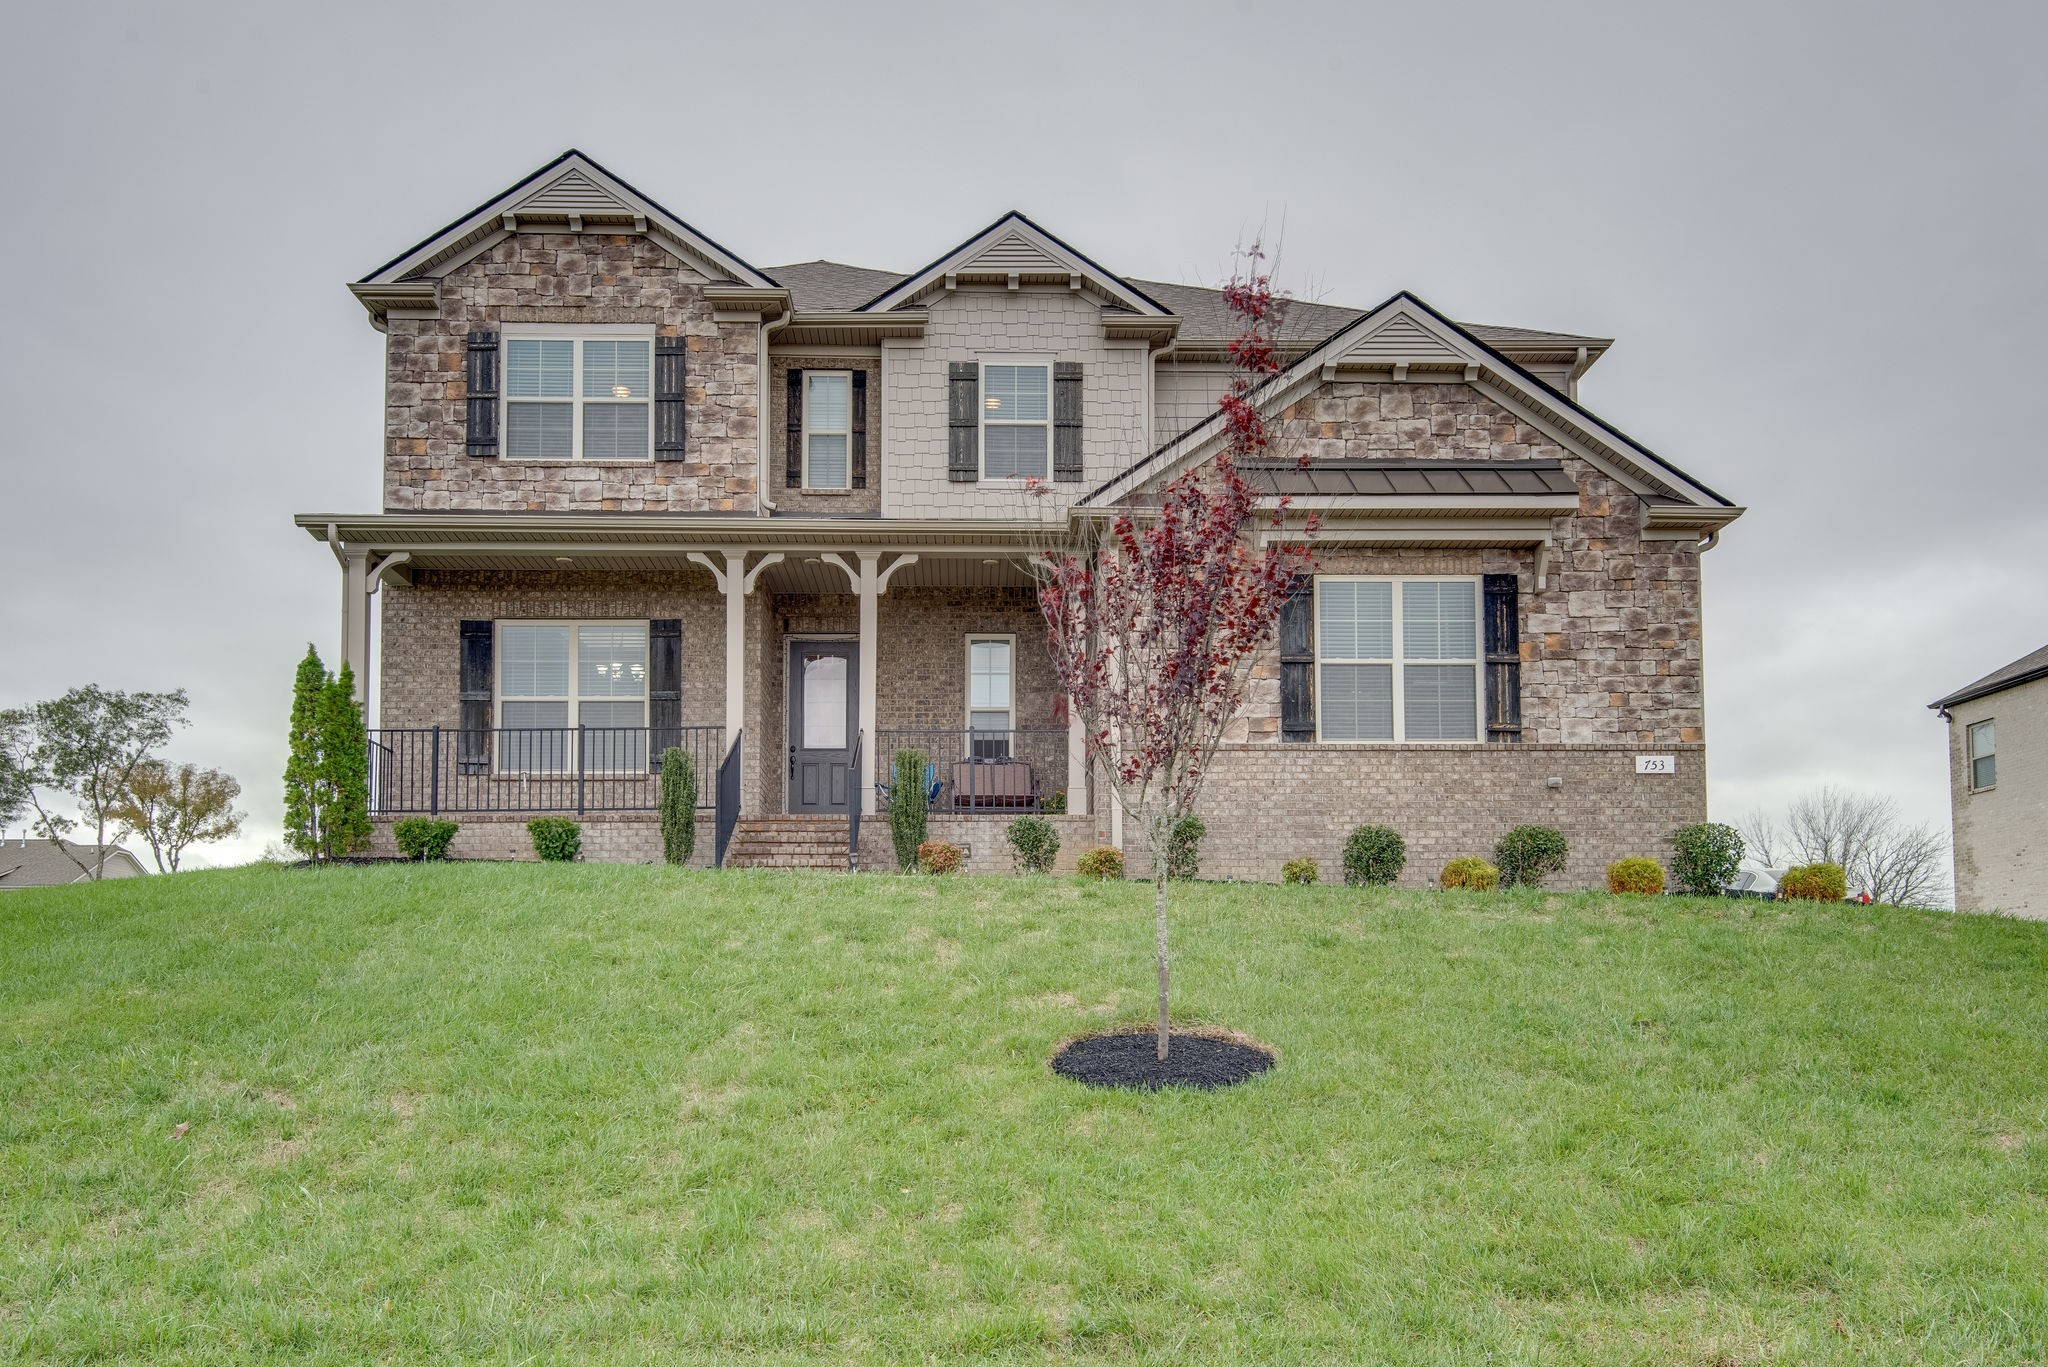 Beautiful 0.5 acre lot with great views, 5 bed/3.5 bath, 1st floor Master bedroom with sitting room/nursery, stacked stone fireplace, SS Electrolux Appliances, large front porch, irrigation system, Custom Master bedroom closet, 4 BR upstairs with living area, Large flat backyard.